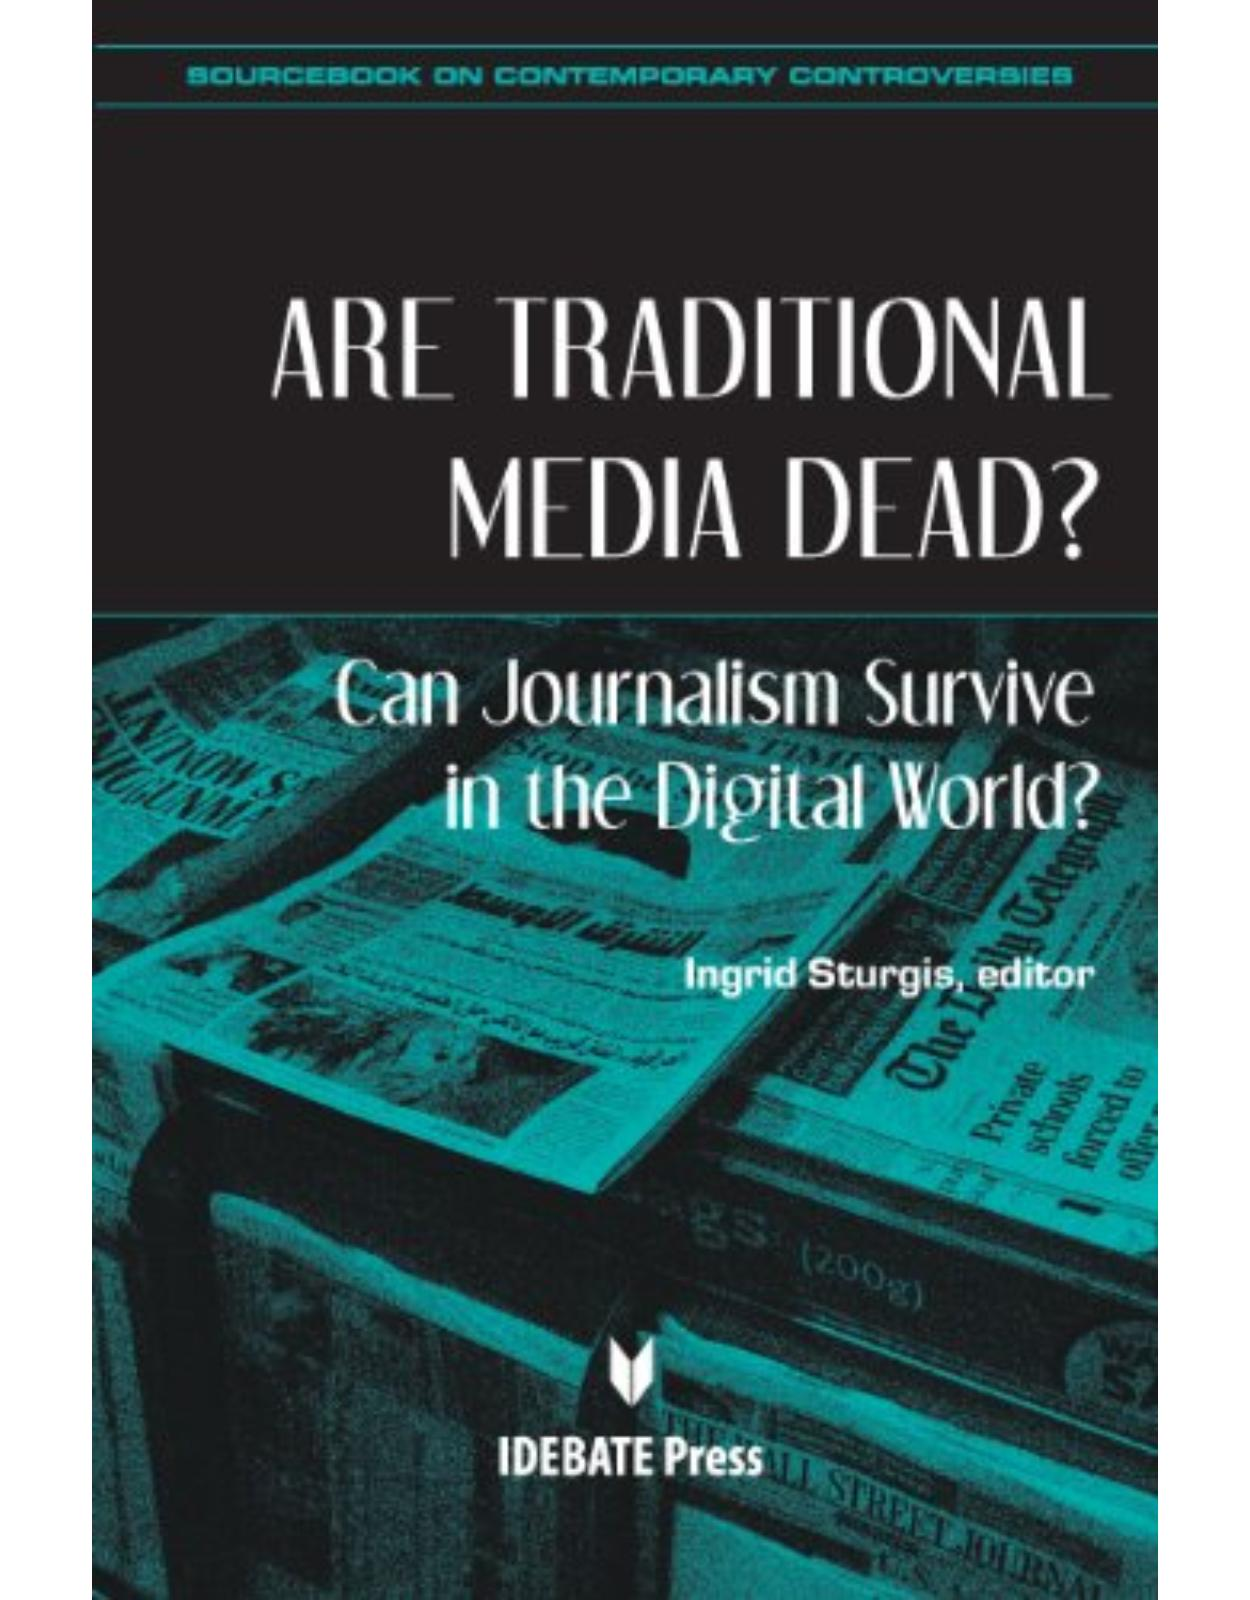 Are Traditional Media Dead? Can Journalism Survive in the Digital World? (Sourcebook on Contemporary Controversies)